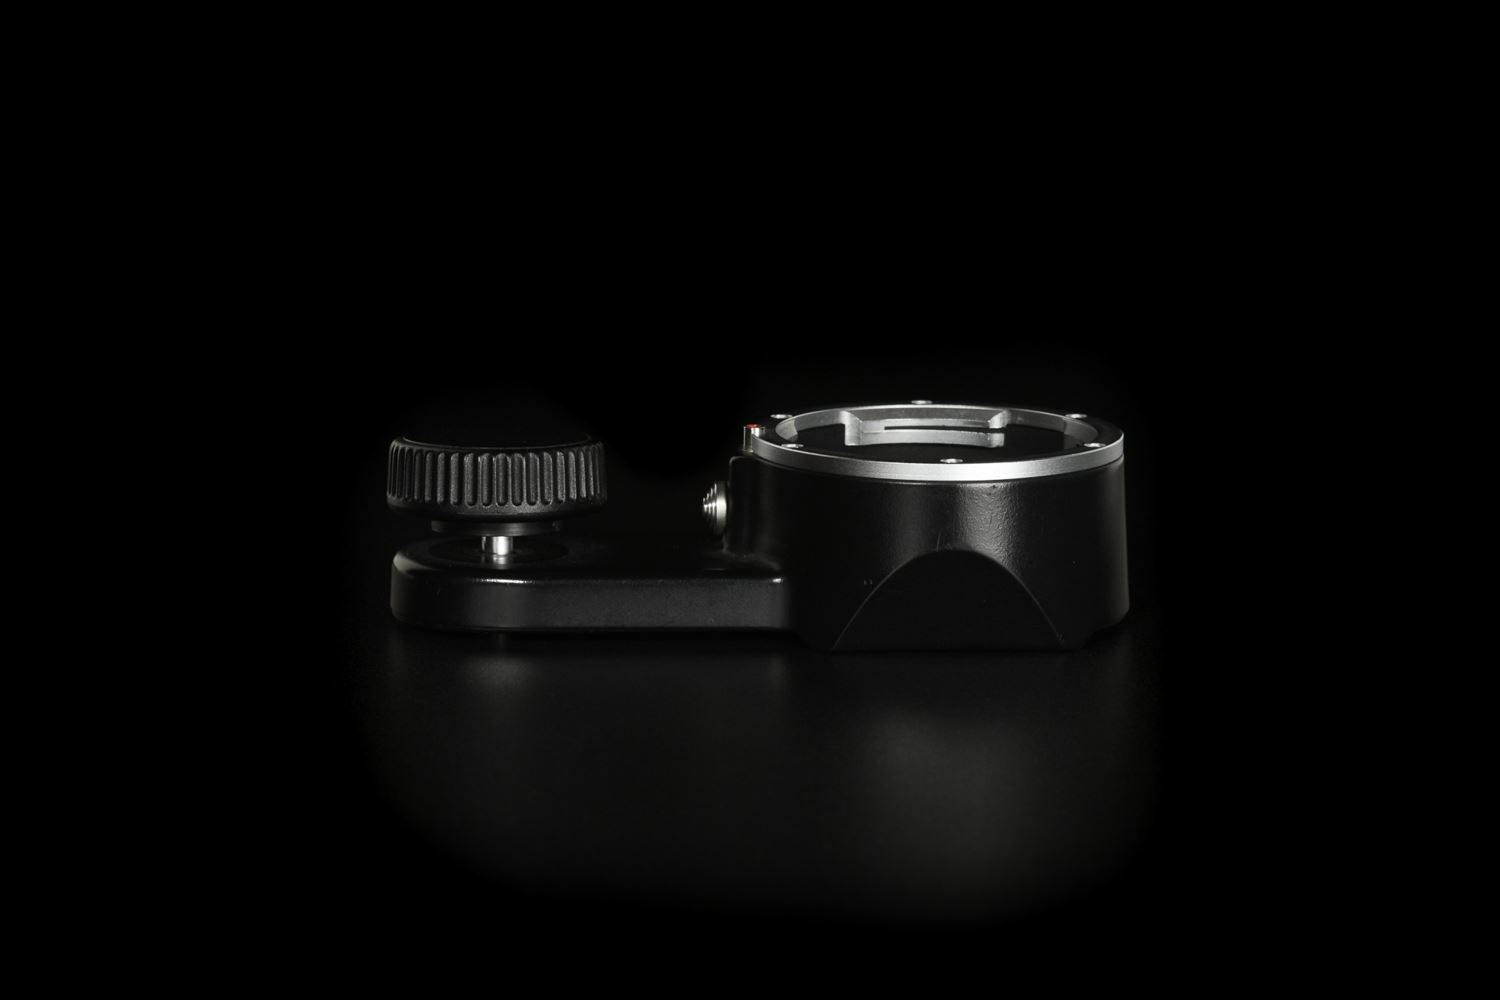 Picture of Leica Lens Carrier M for M-Series Cameras